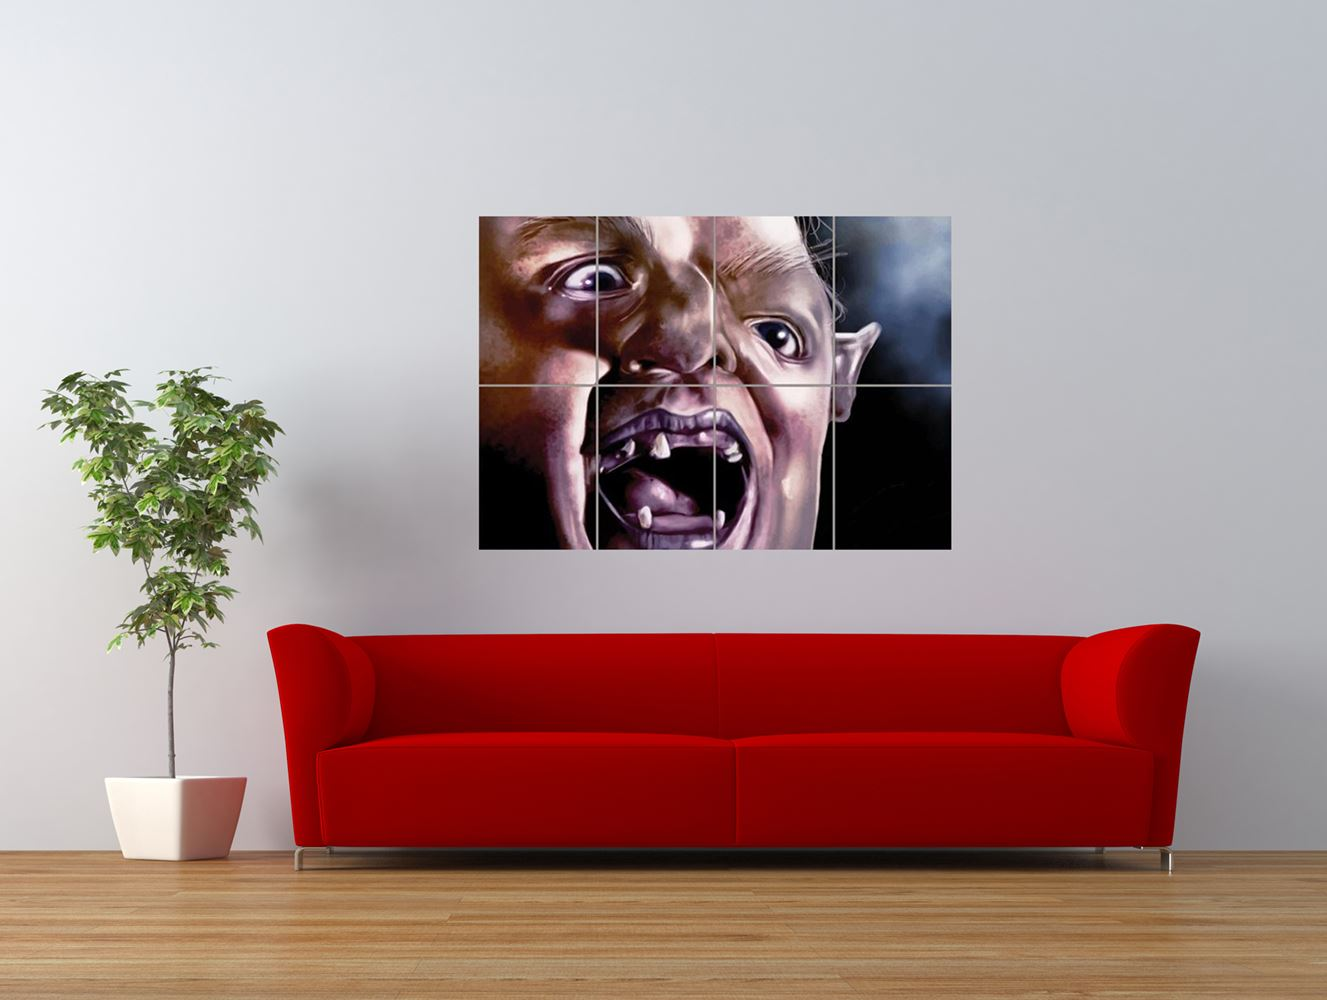 movie film character goonies sloth weird giant art print panel poster nor0201 ebay. Black Bedroom Furniture Sets. Home Design Ideas